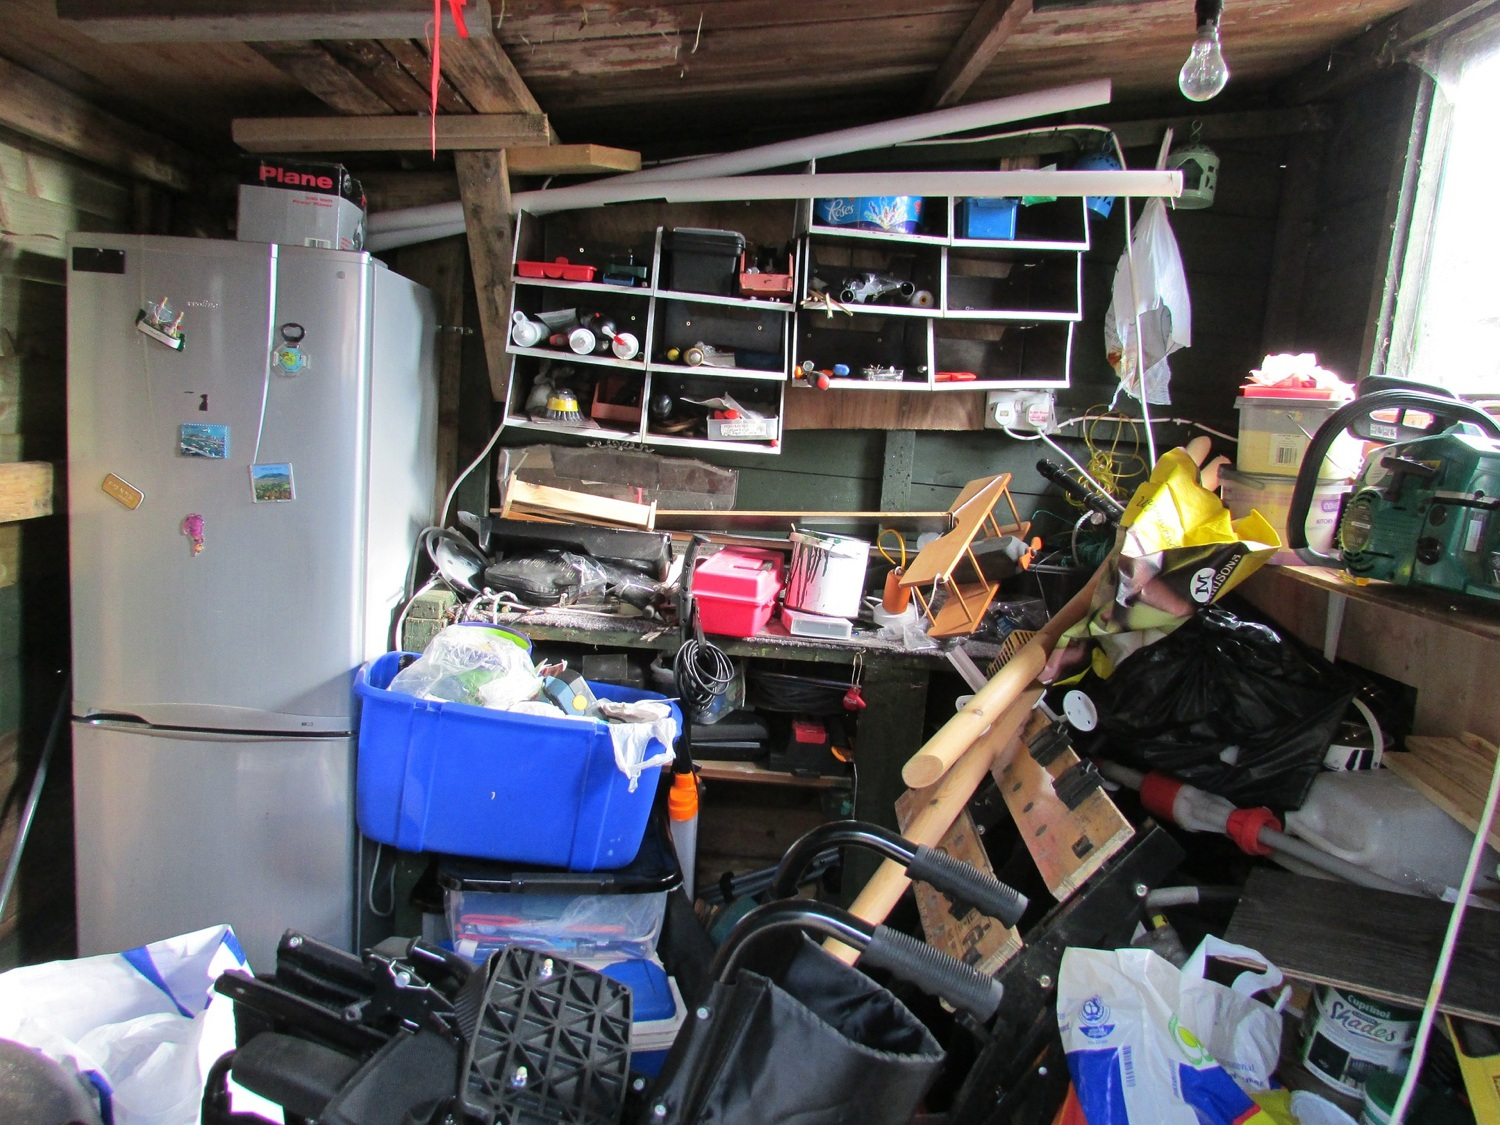 Garage full of stuff in house.